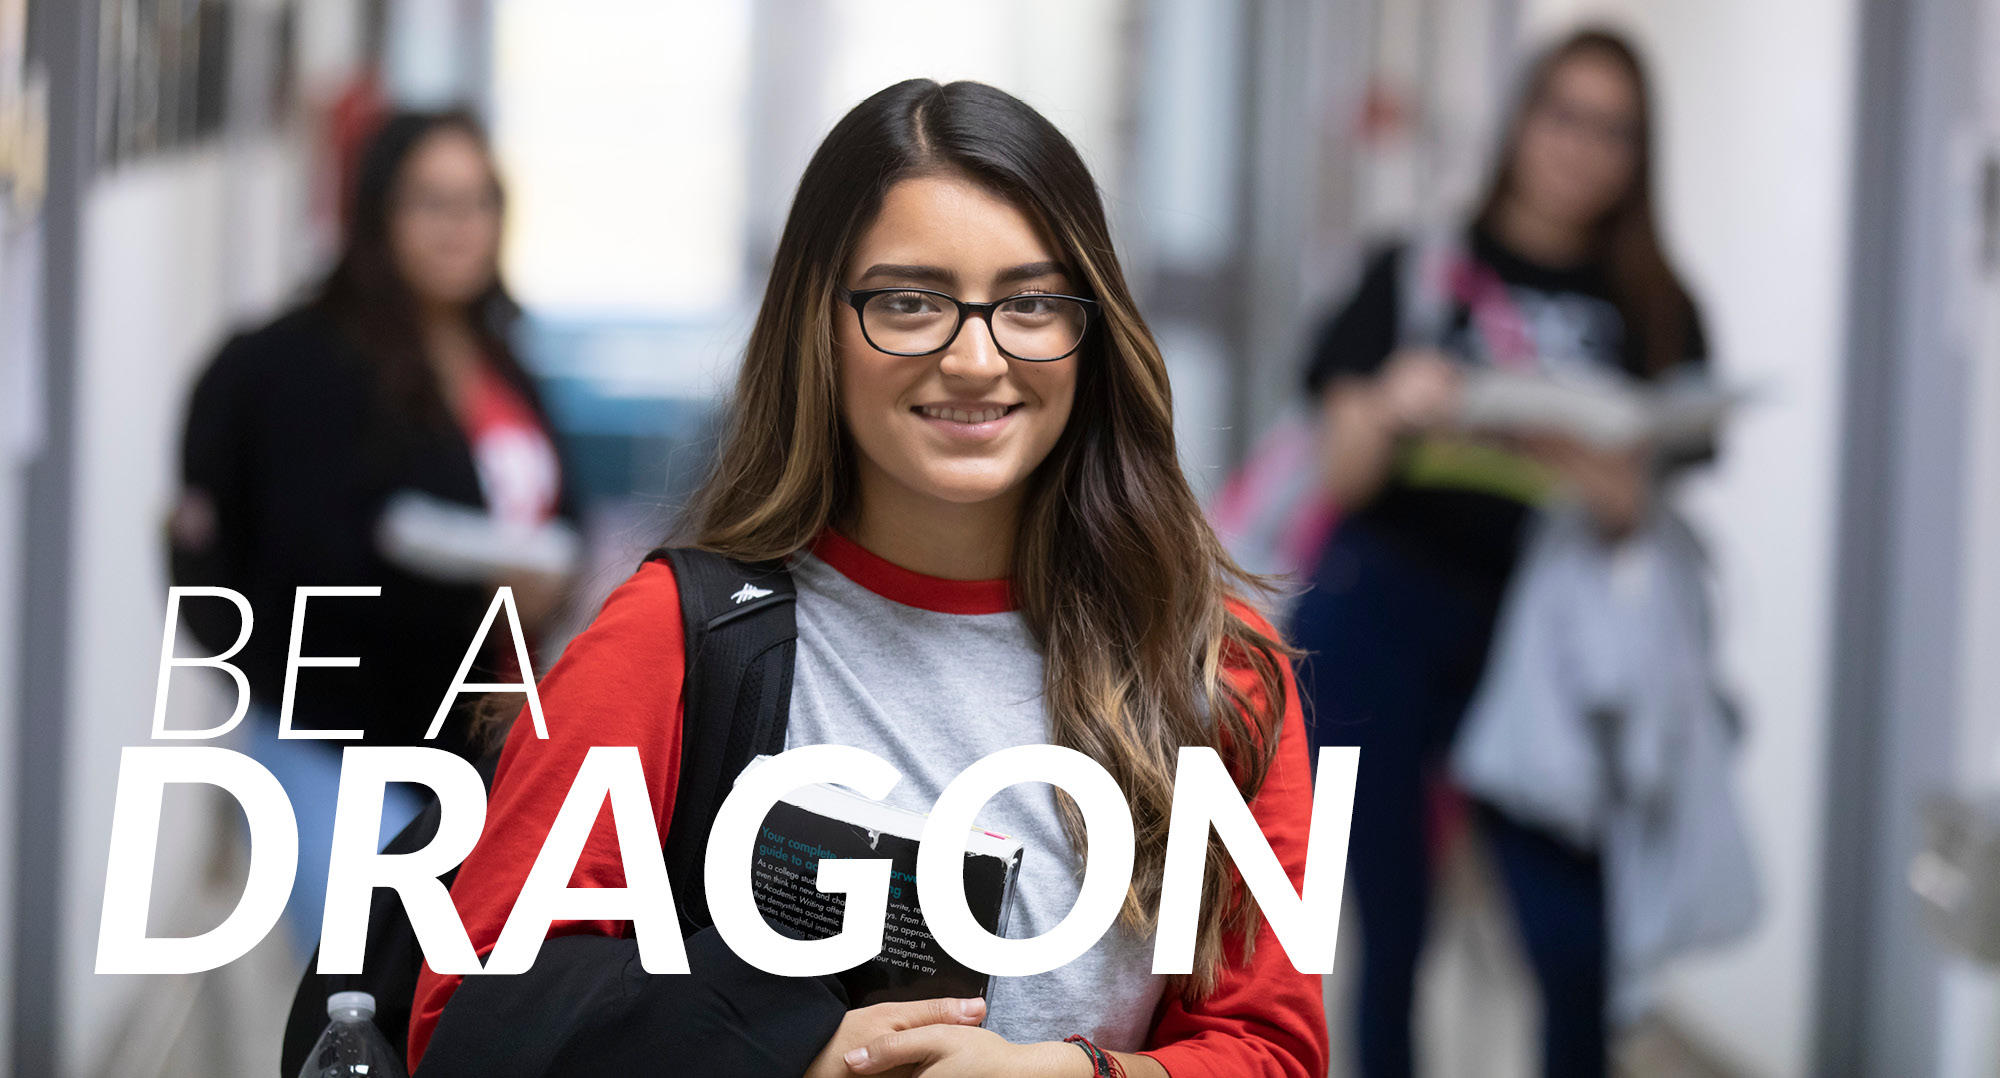 Be a Dragon